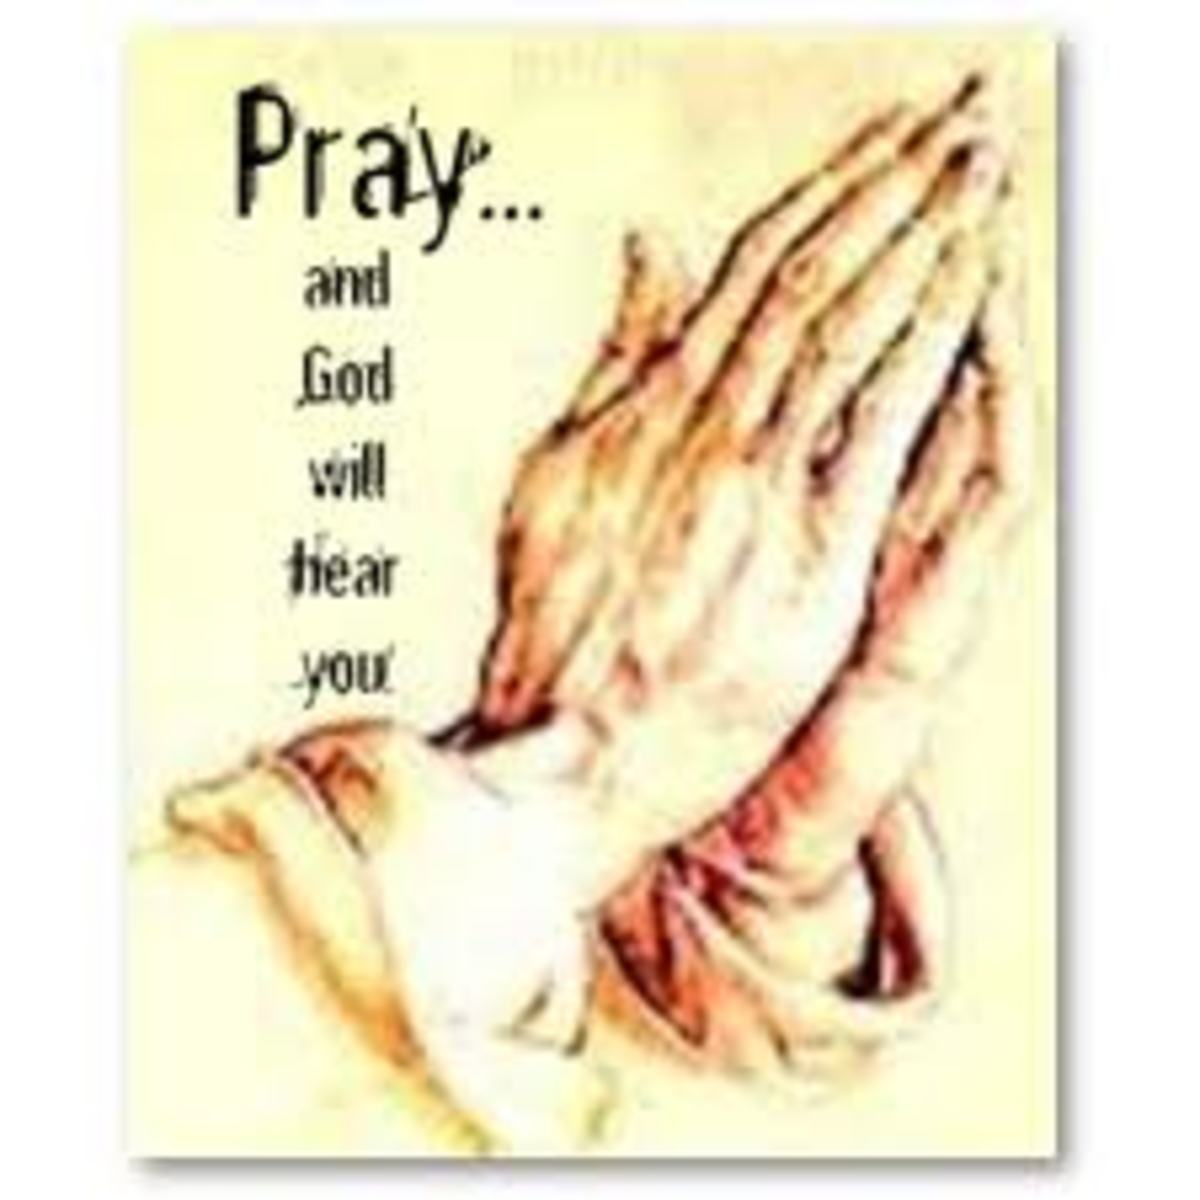 Have you tried Praying?